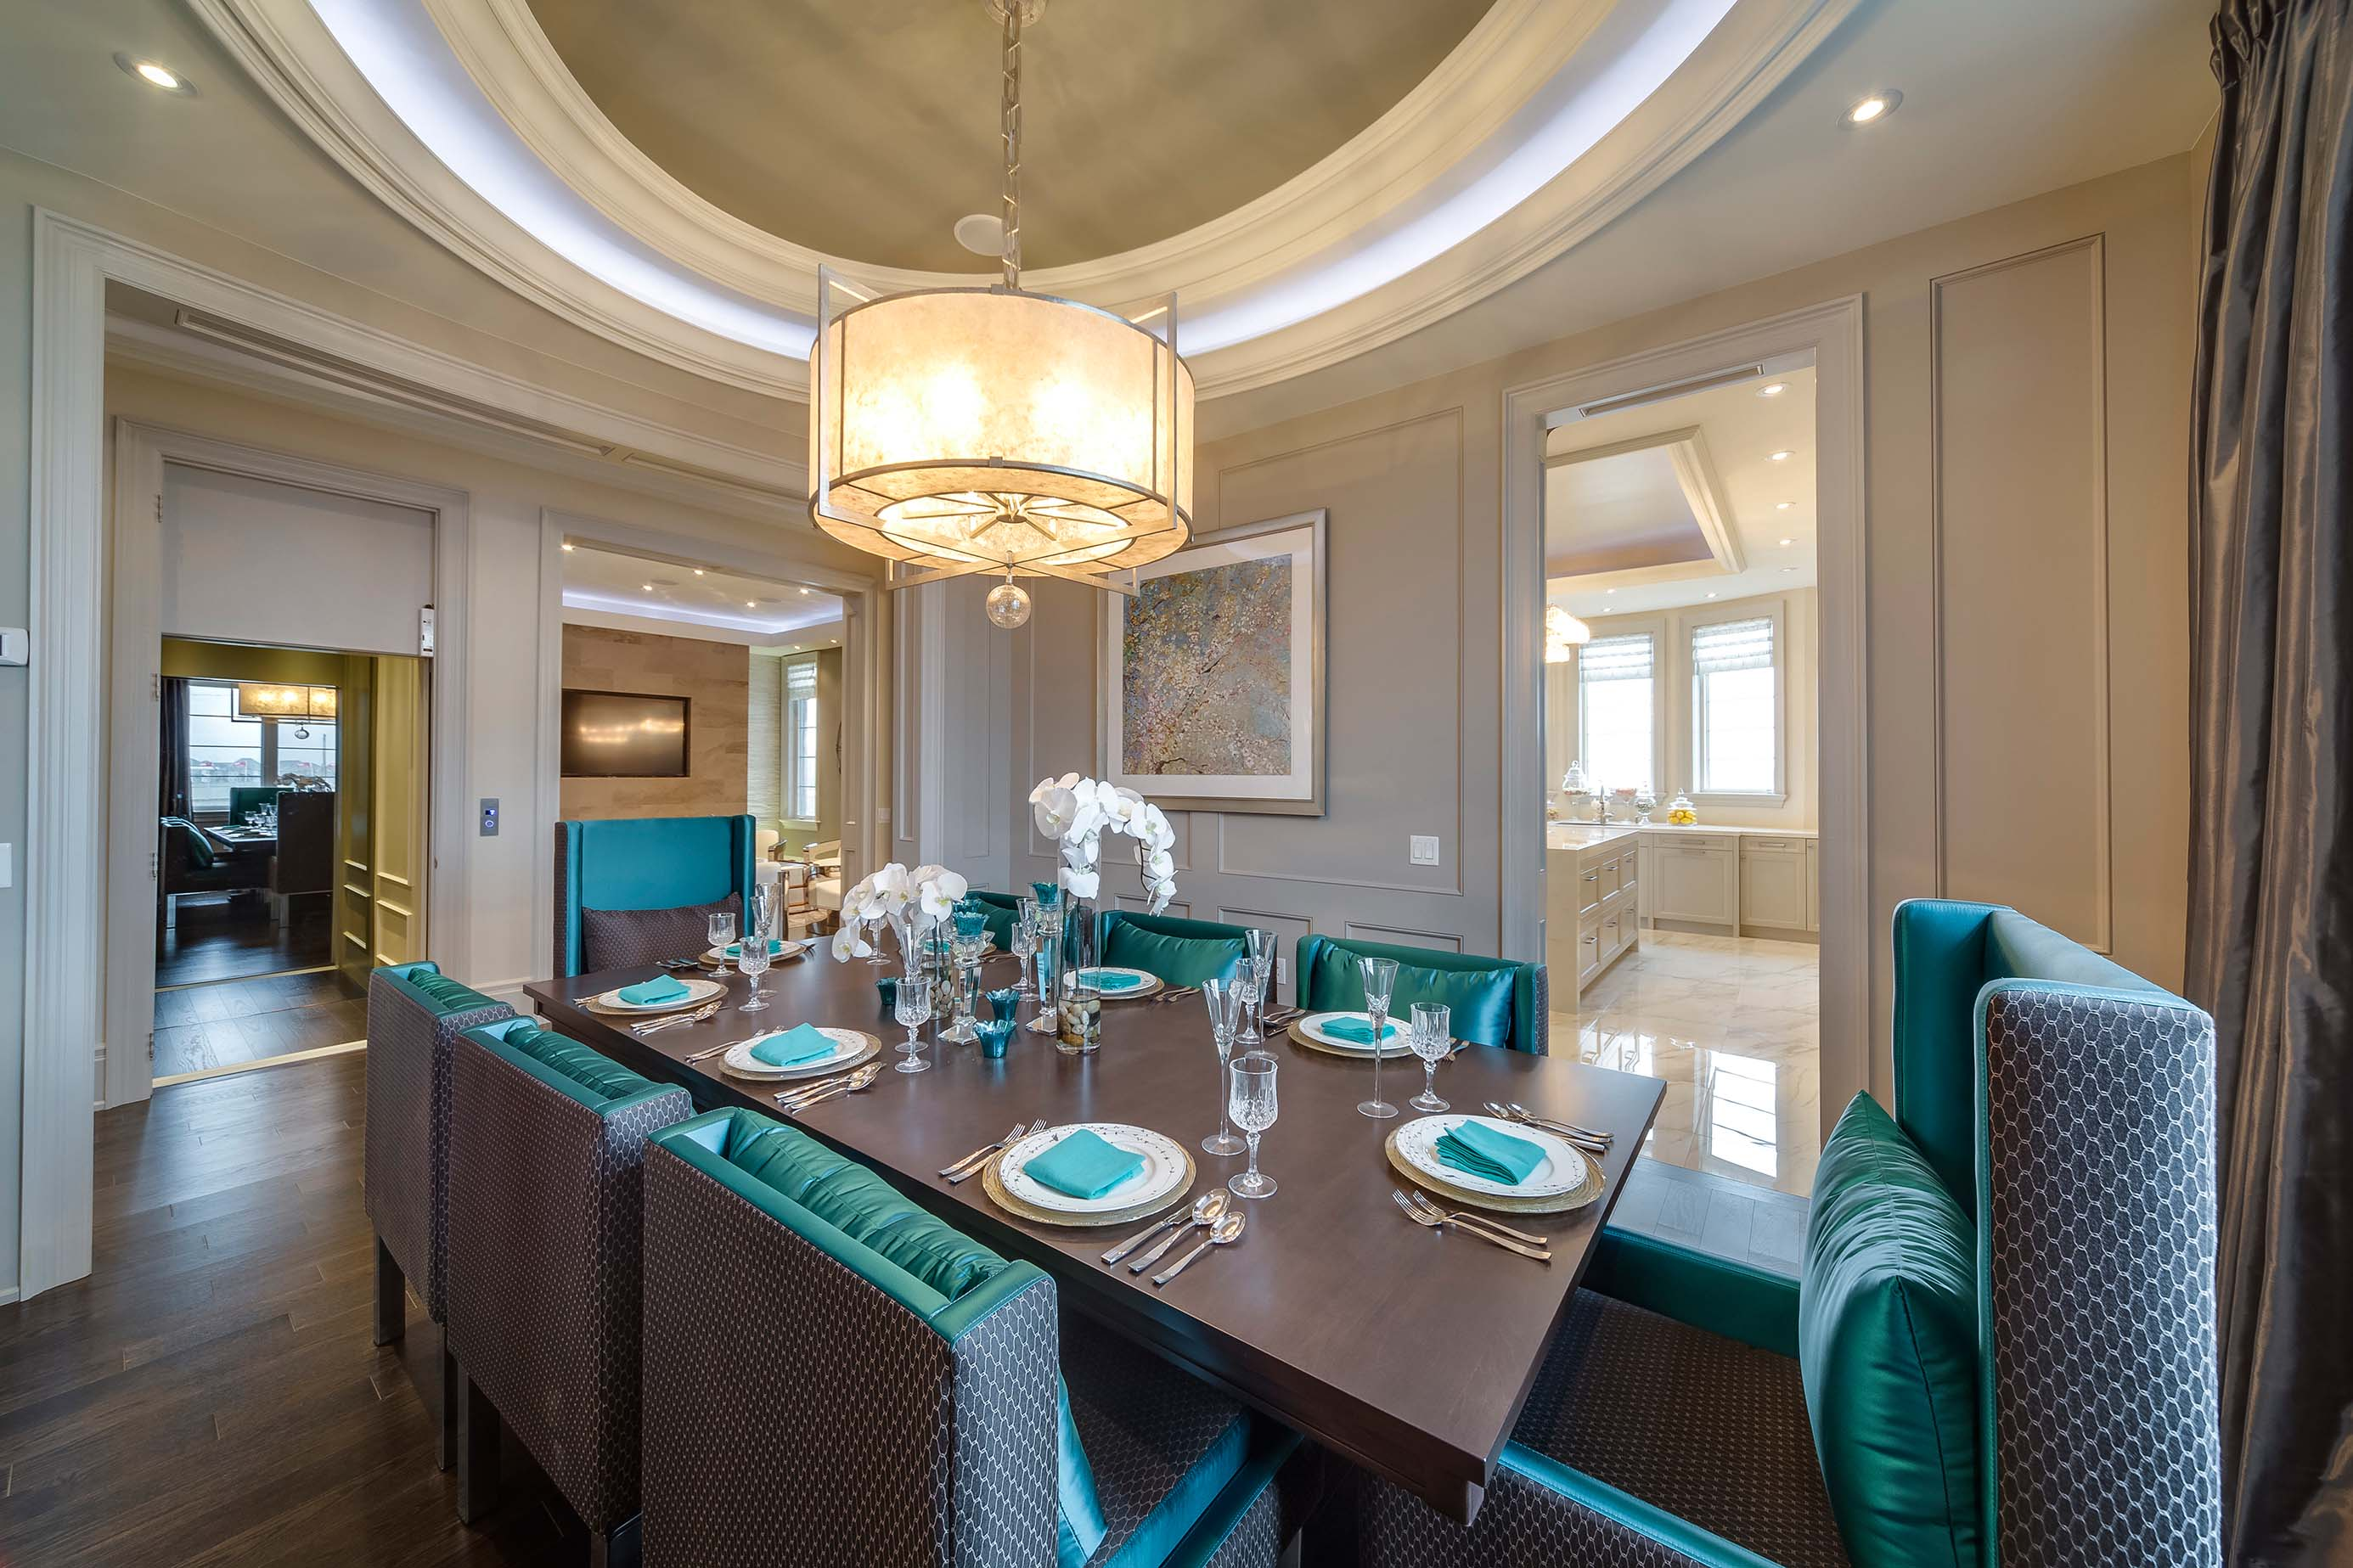 The Latest Trends In Dining Room Lighting  Caliber Homes